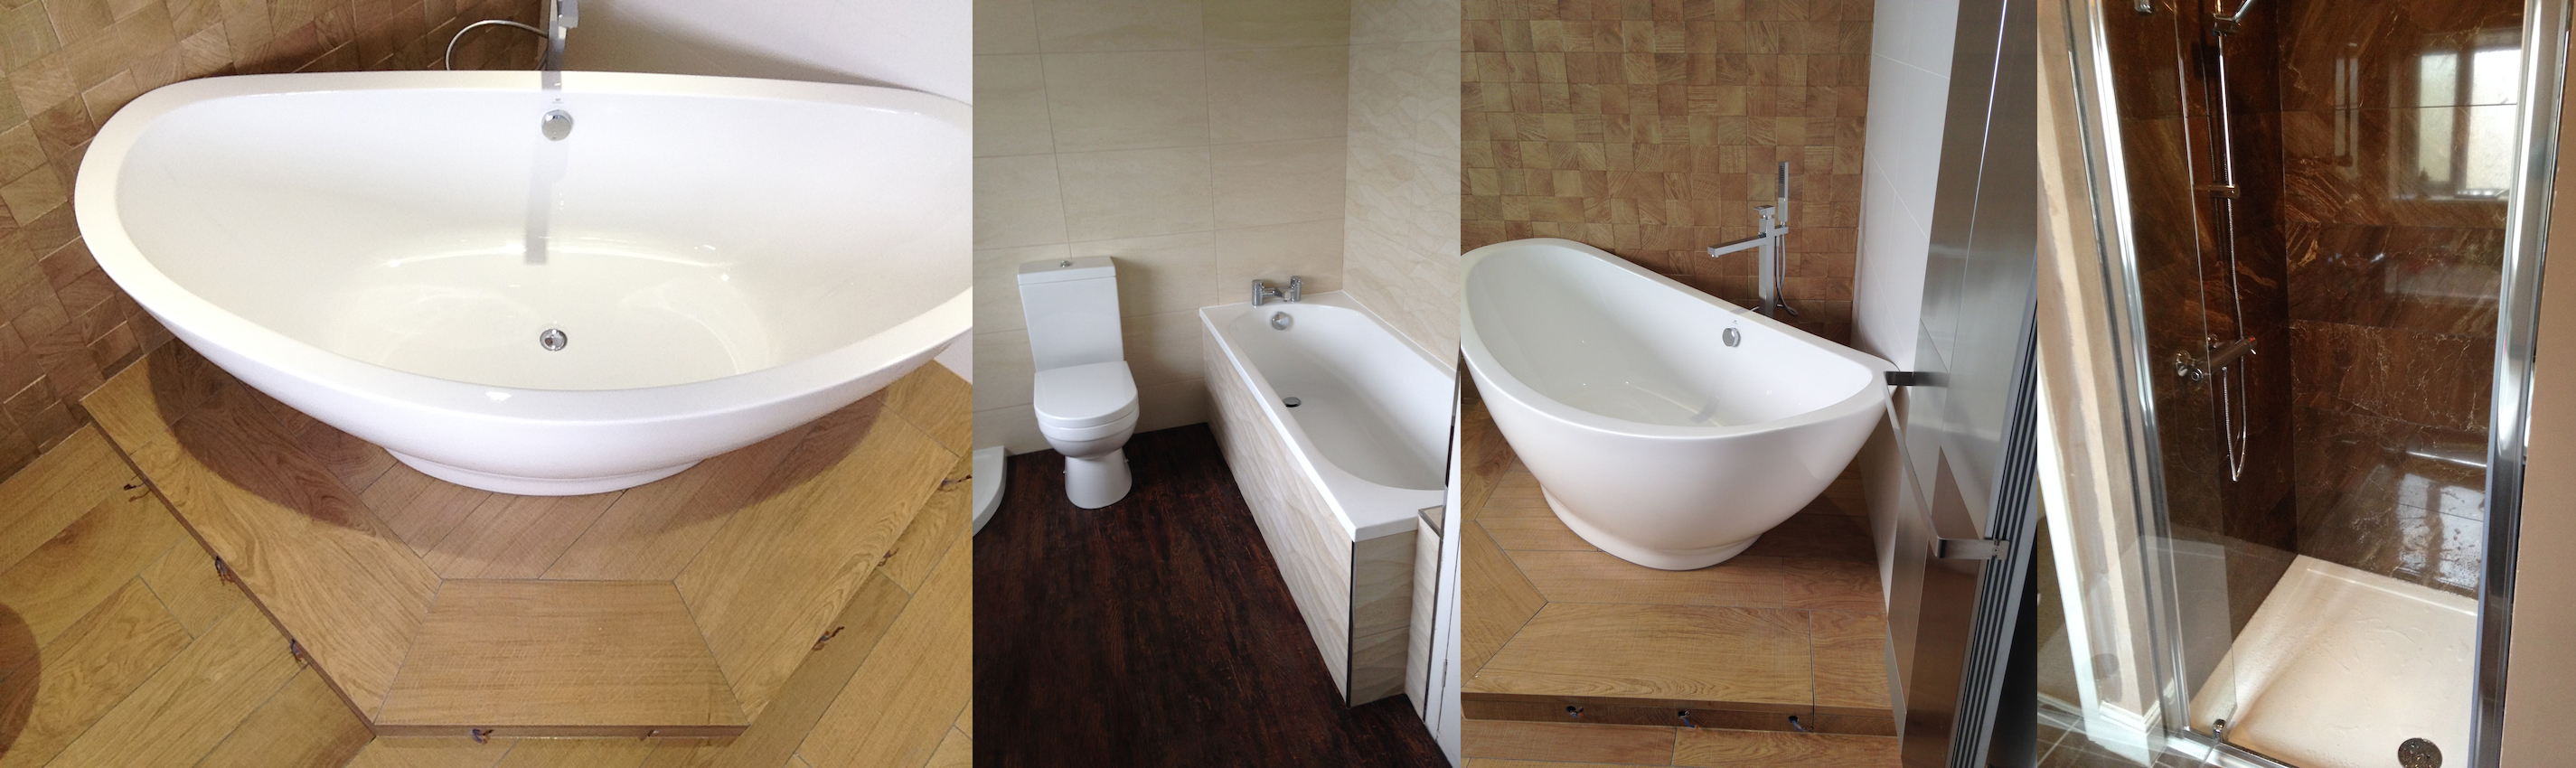 Bathroom renovations yorkshire mw bathrooms for Bathroom design yorkshire